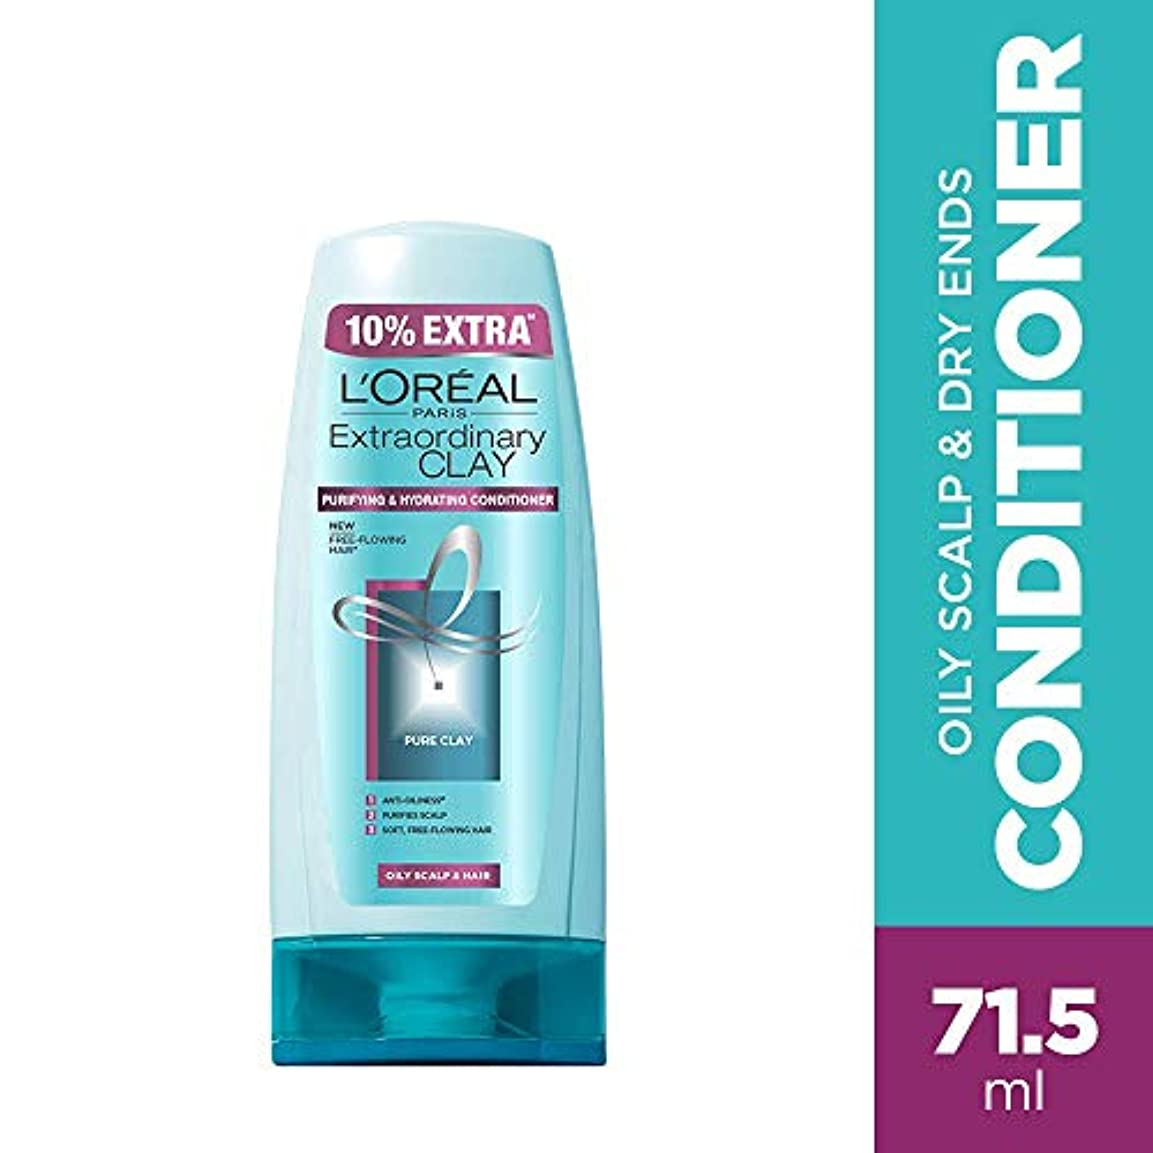 ホースバースト創傷L'Oreal Paris Extraordinary Clay Conditioner, 65ml (With 10% Extra) (Loreal Ship From India)